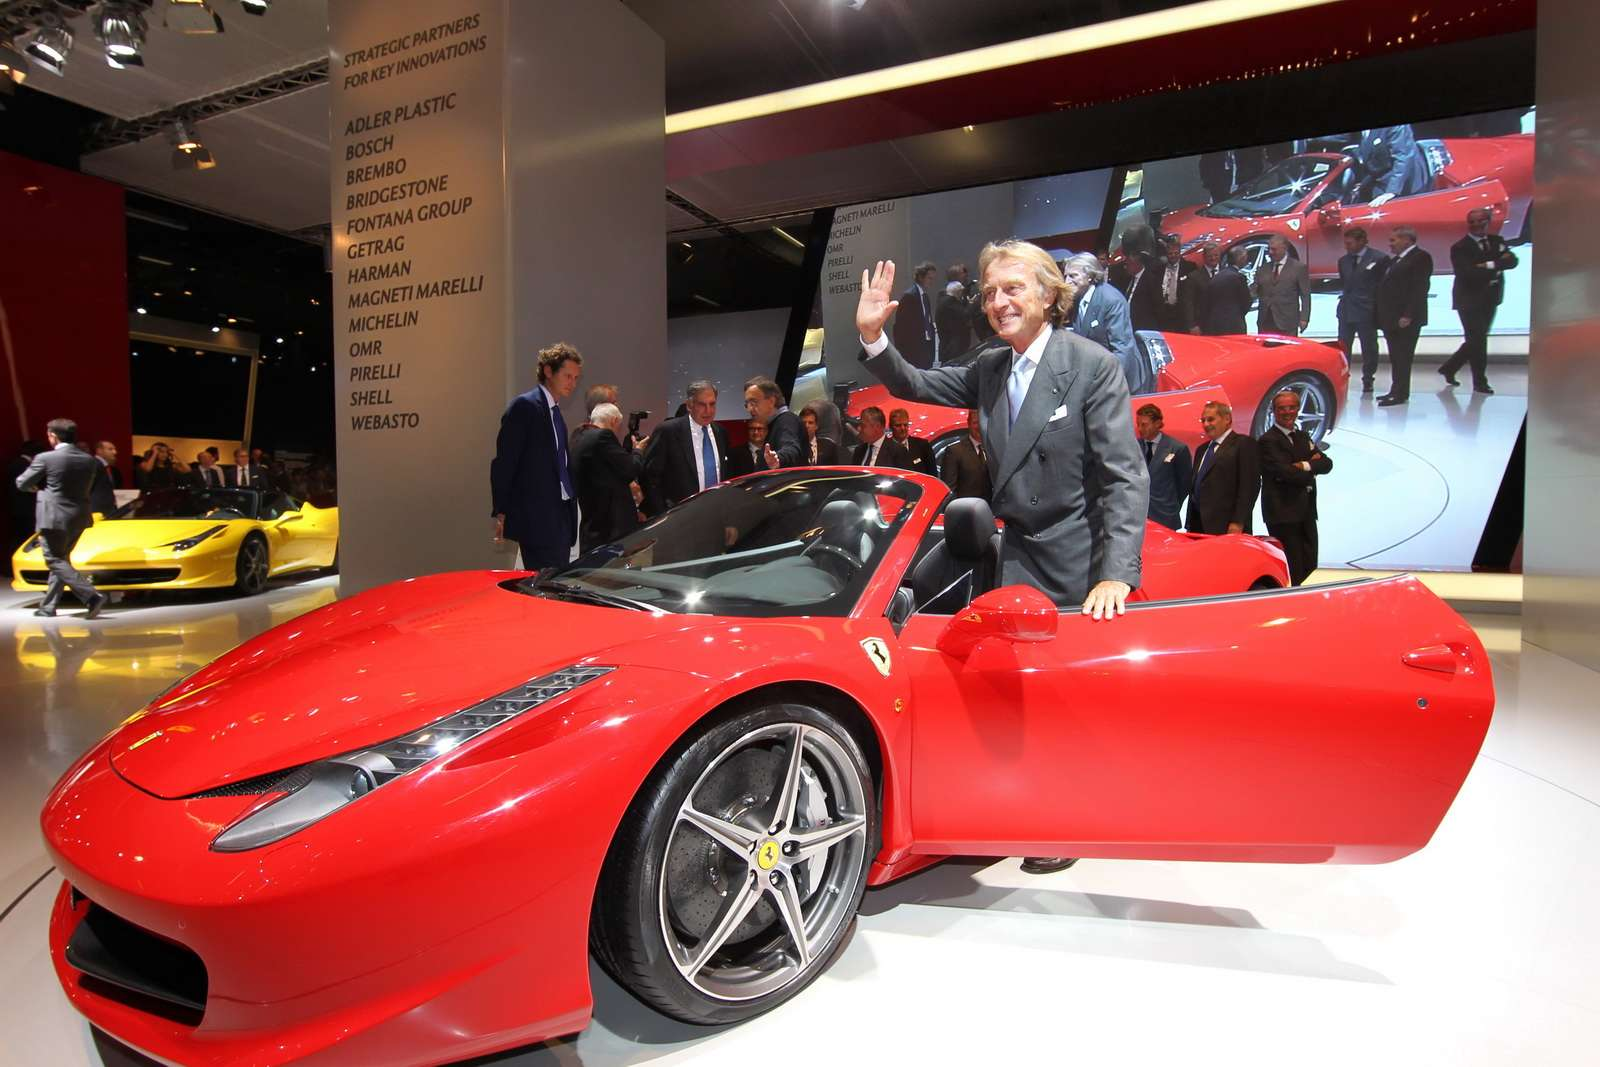 IAA 2011 International Motor Show Frankfurt